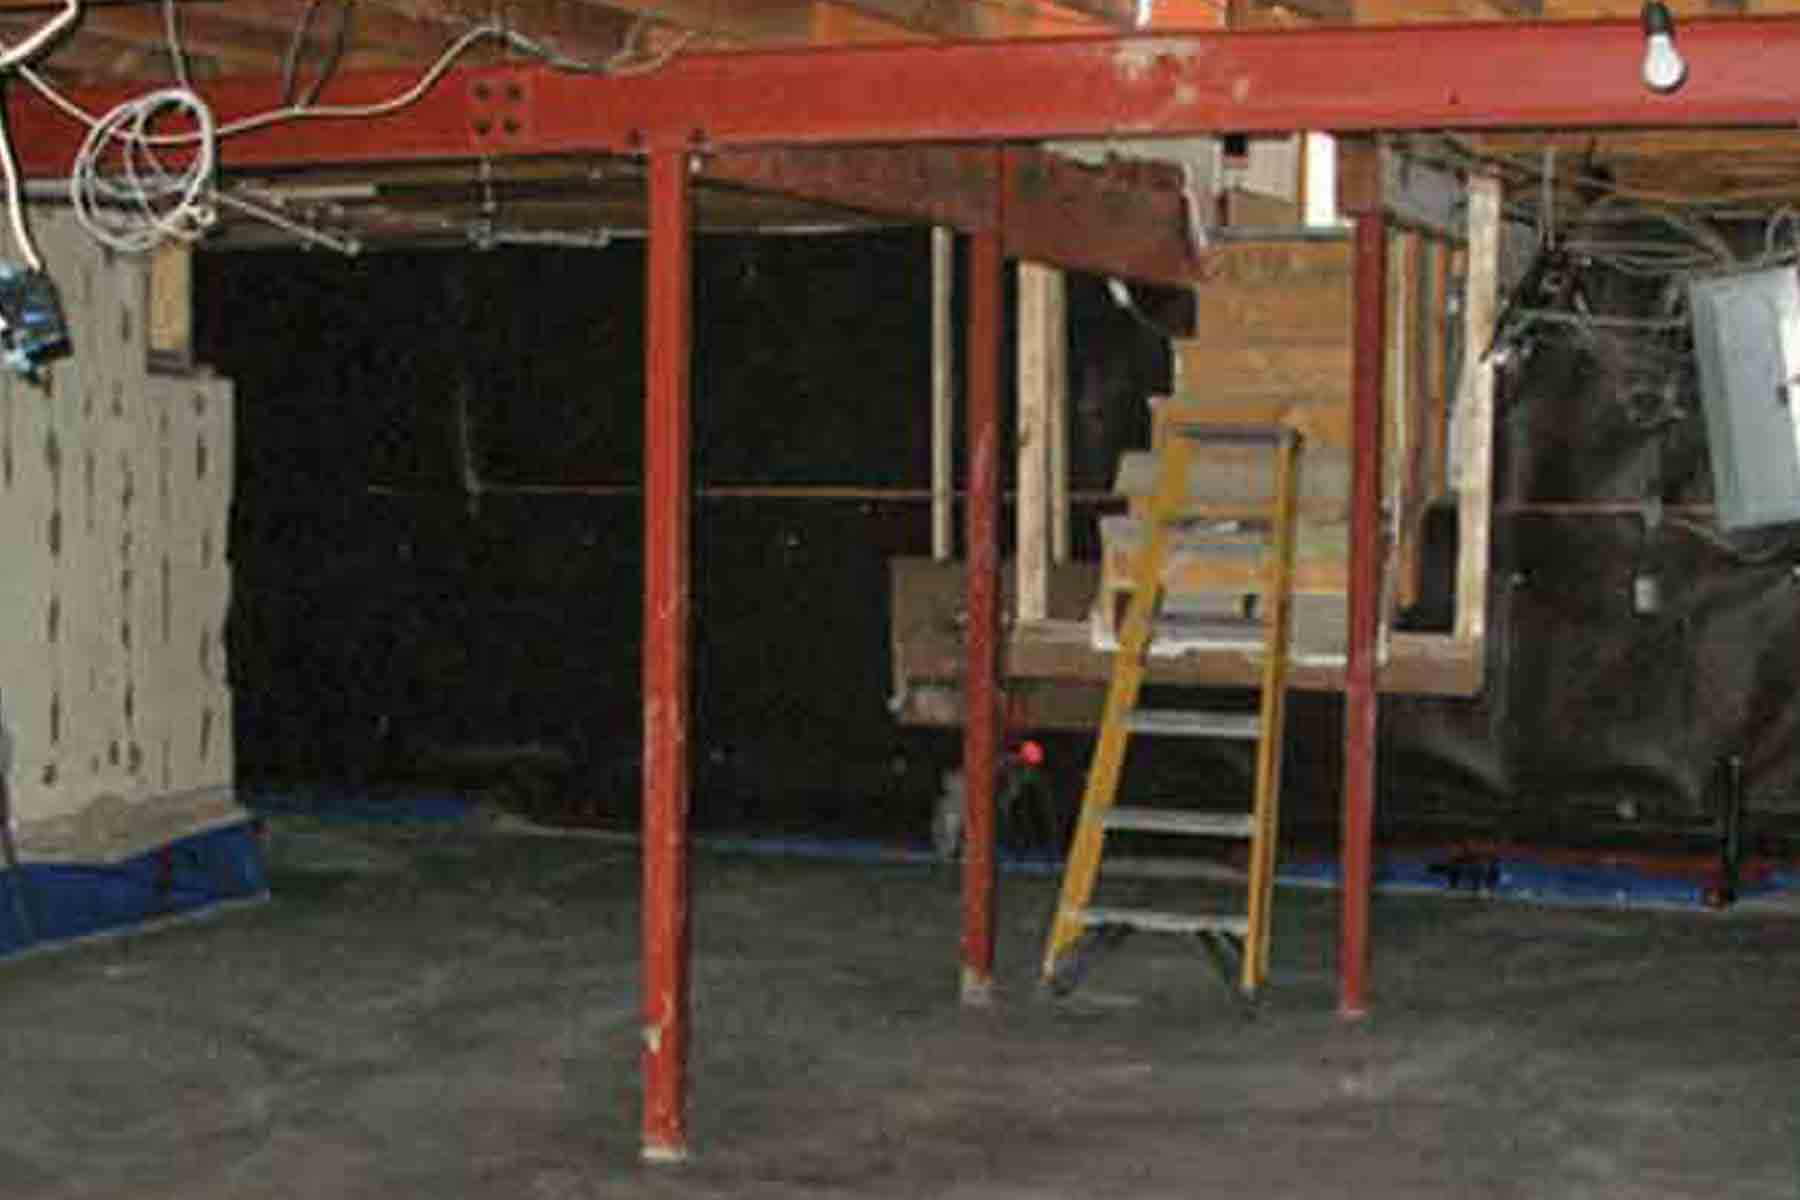 floors require coating triple leveled custom r project existing be was on older floor basemen renovation to normally concrete level this and epoxy houses the old over years leveling basement porfolio in